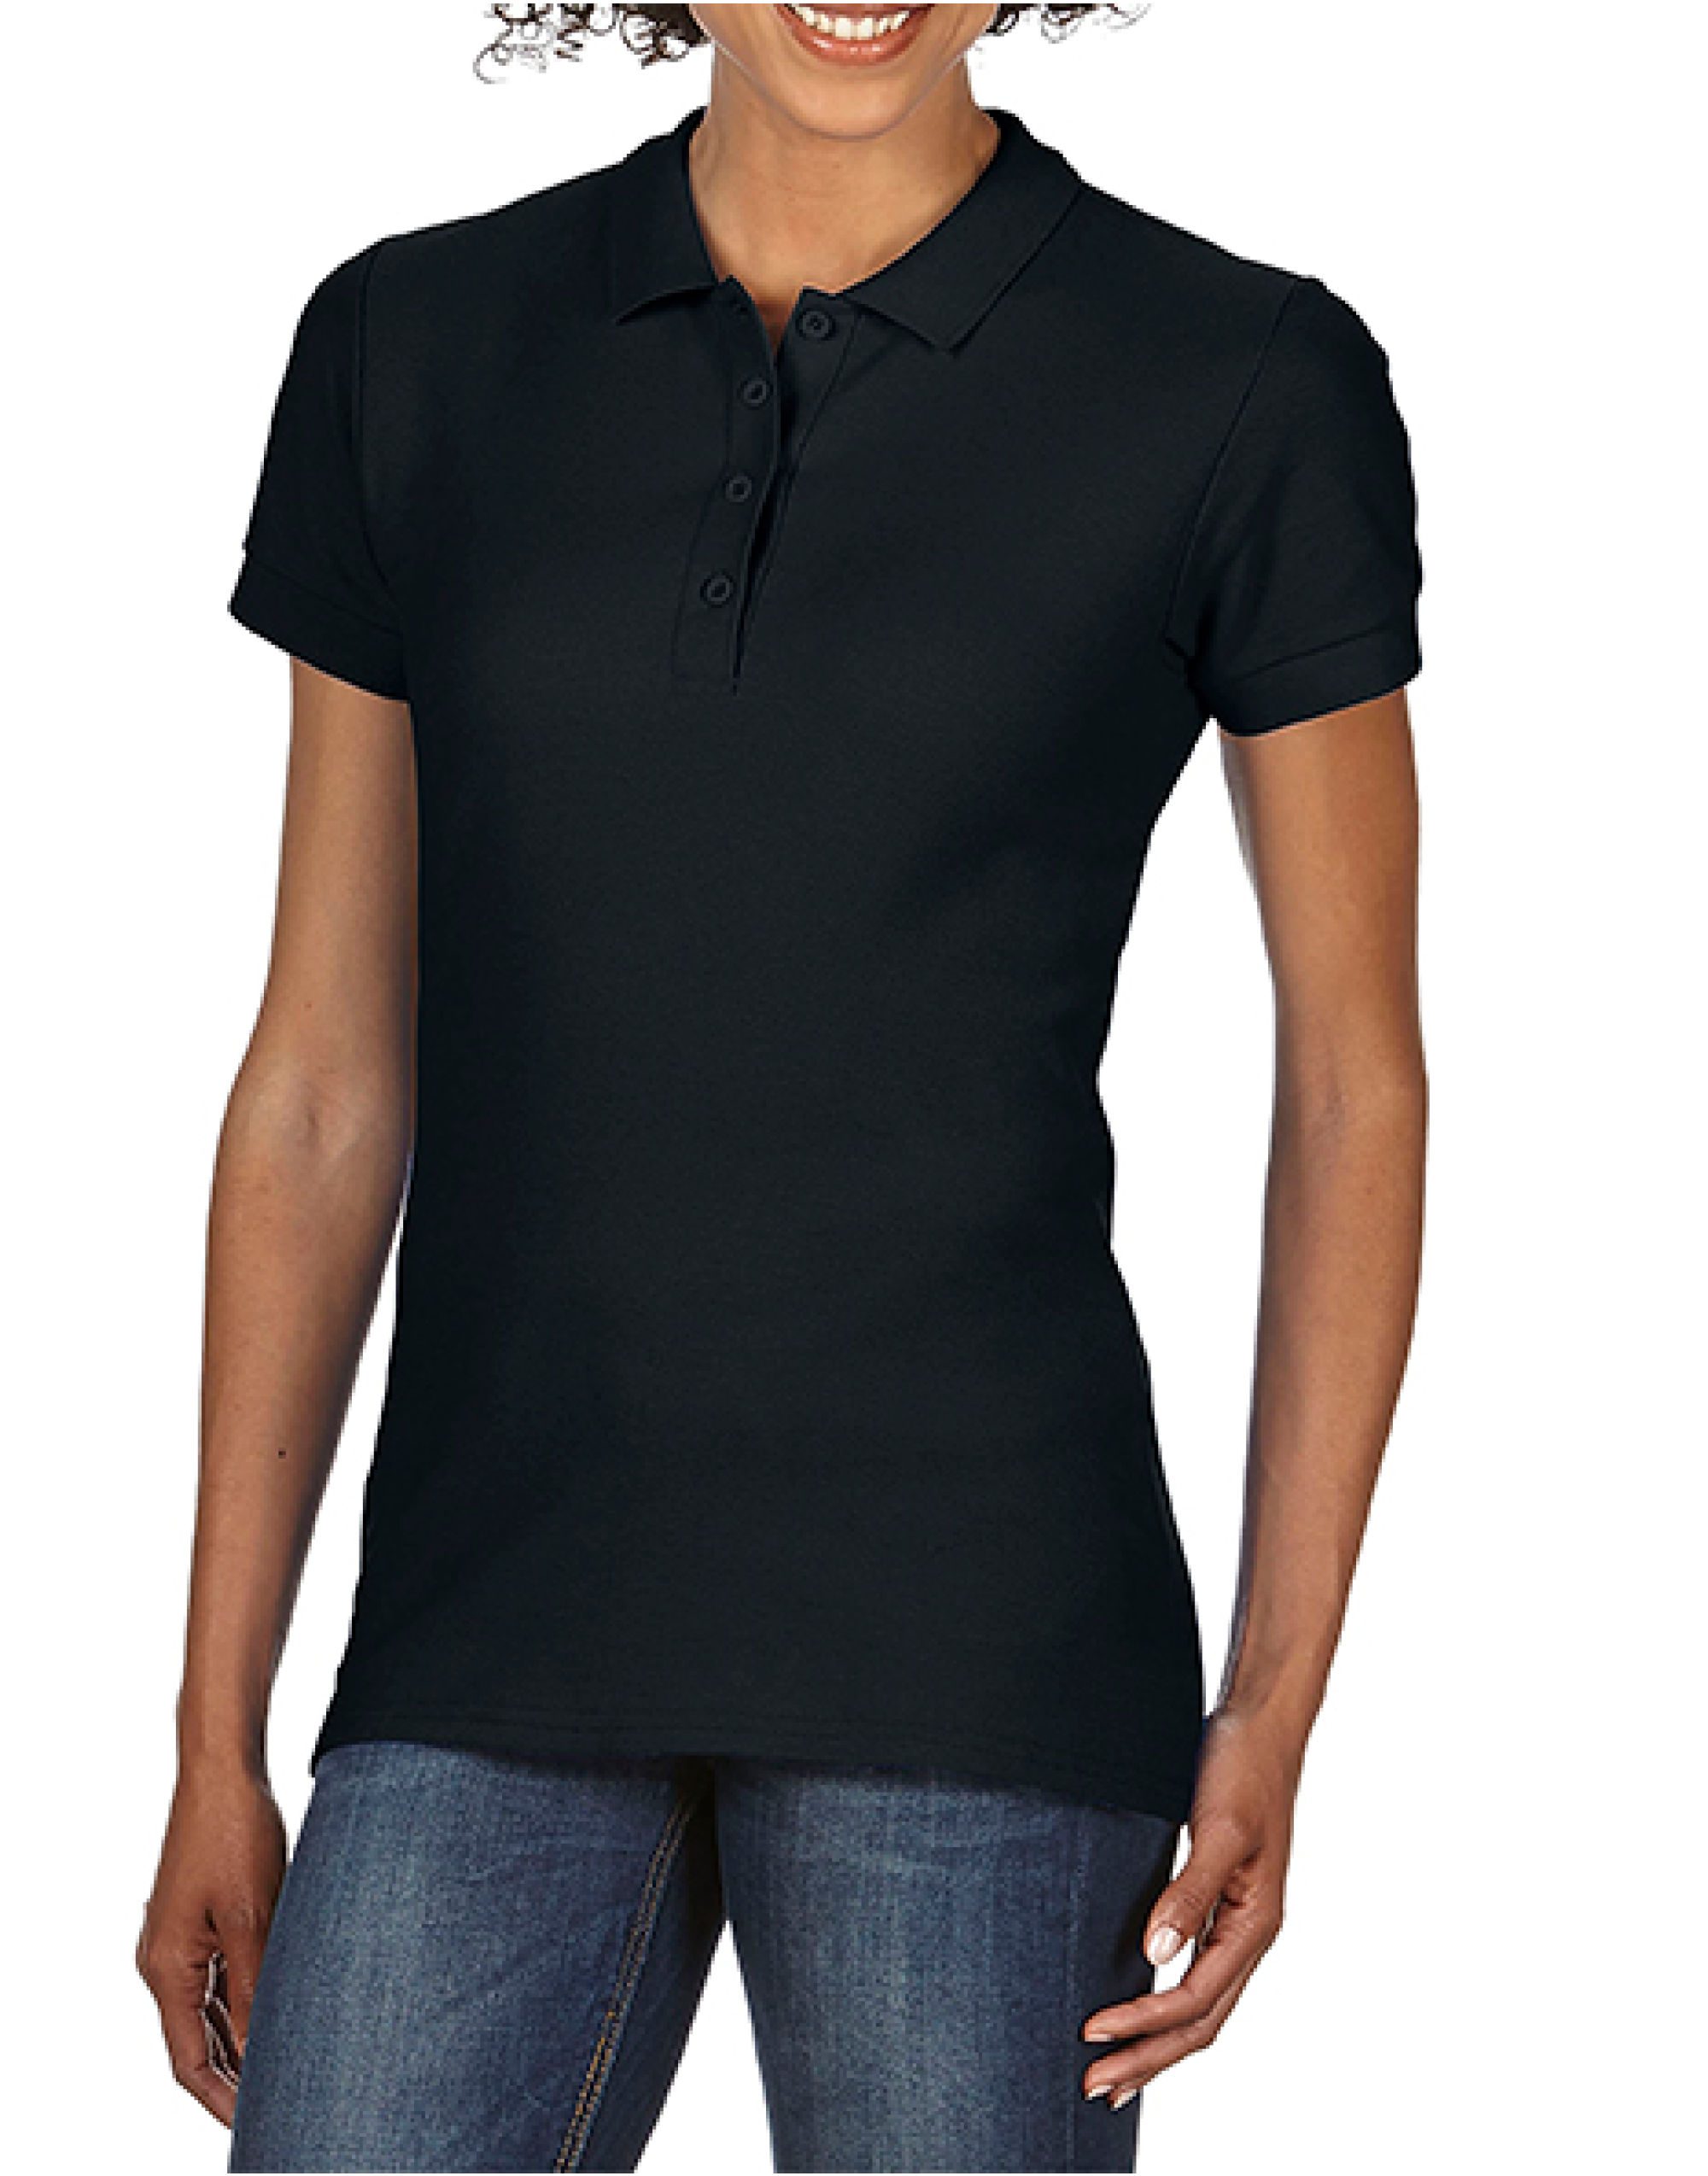 S/tstyle Ladies Double Pique Polo